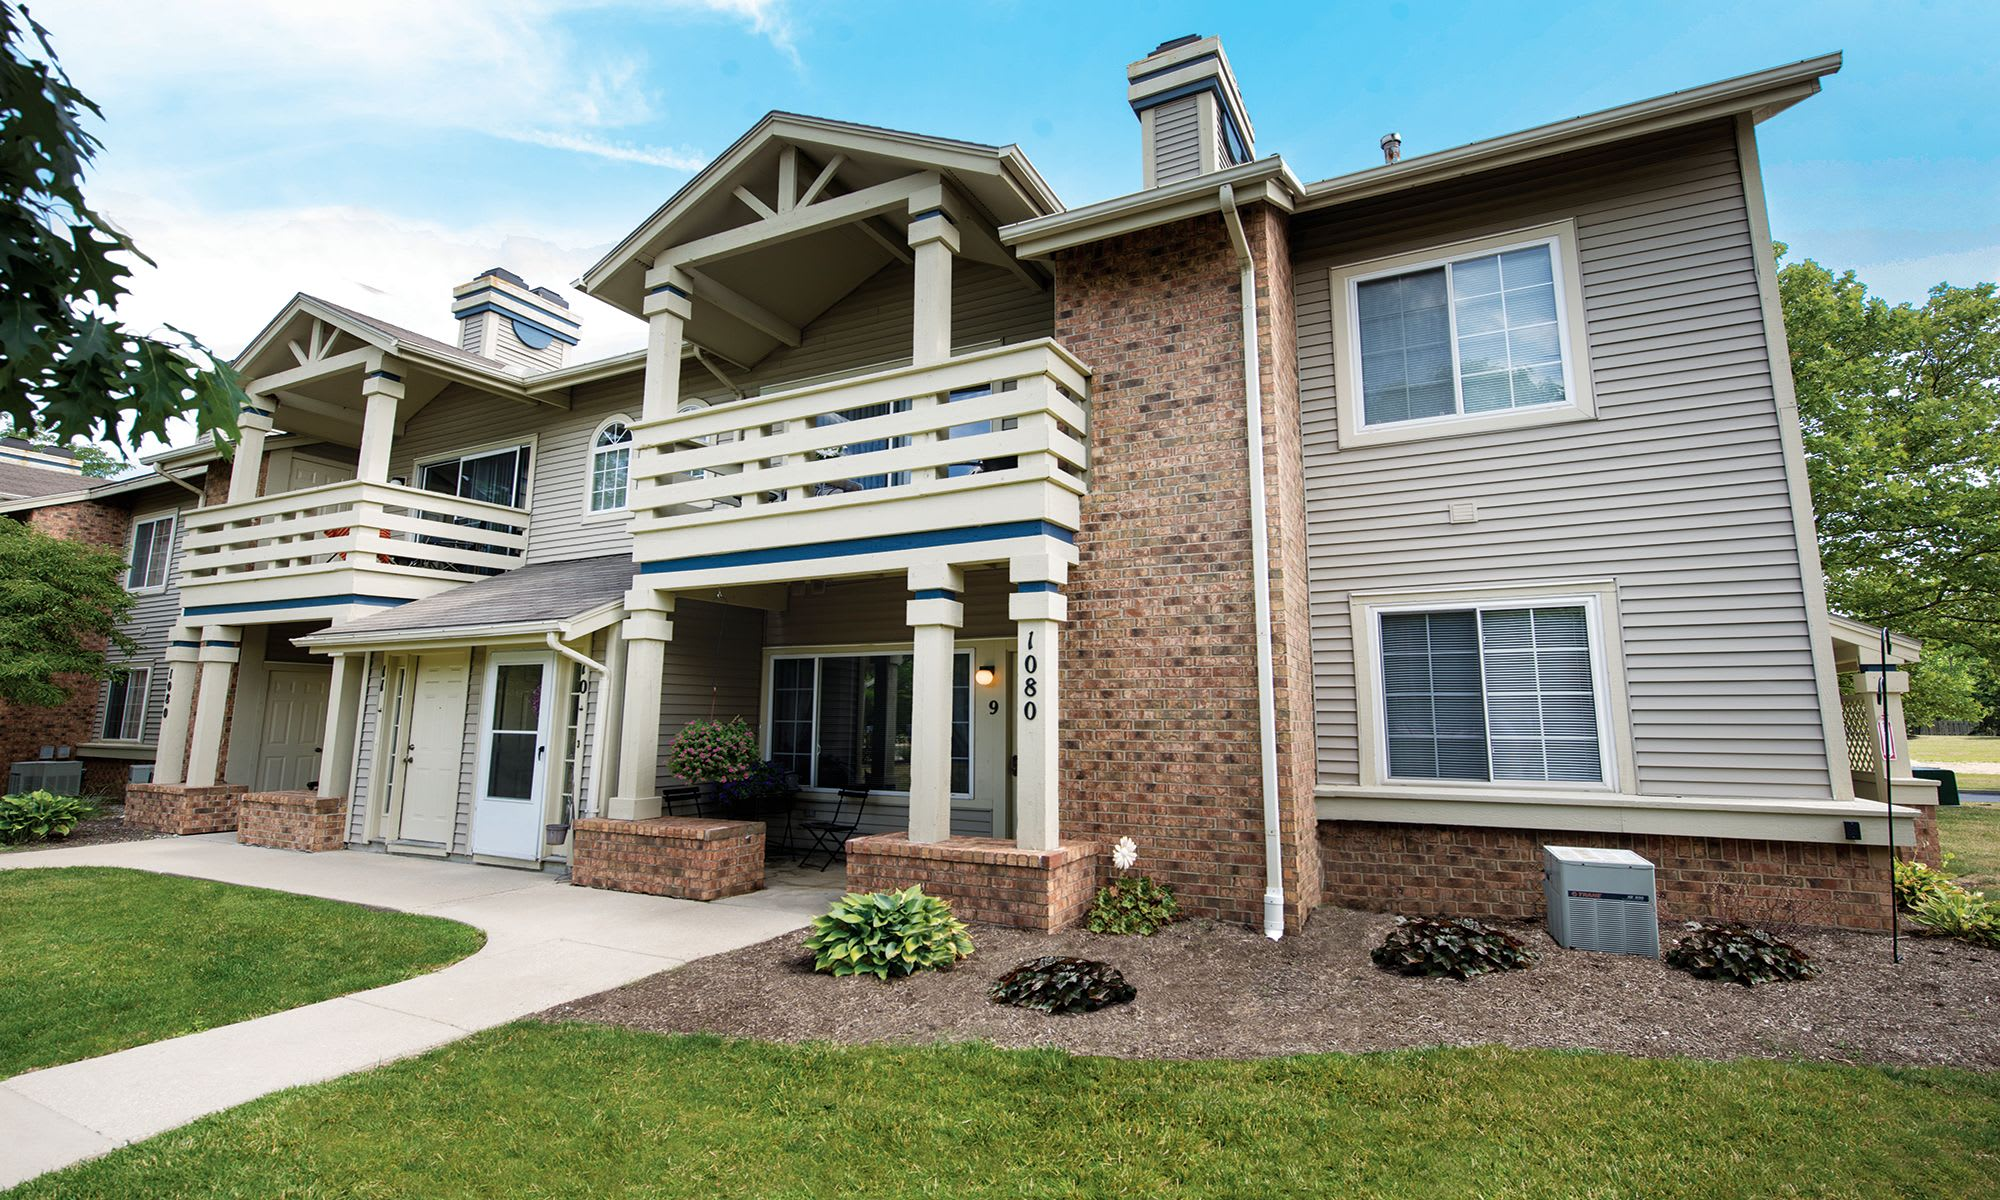 Apartments in Perrysburg, OH